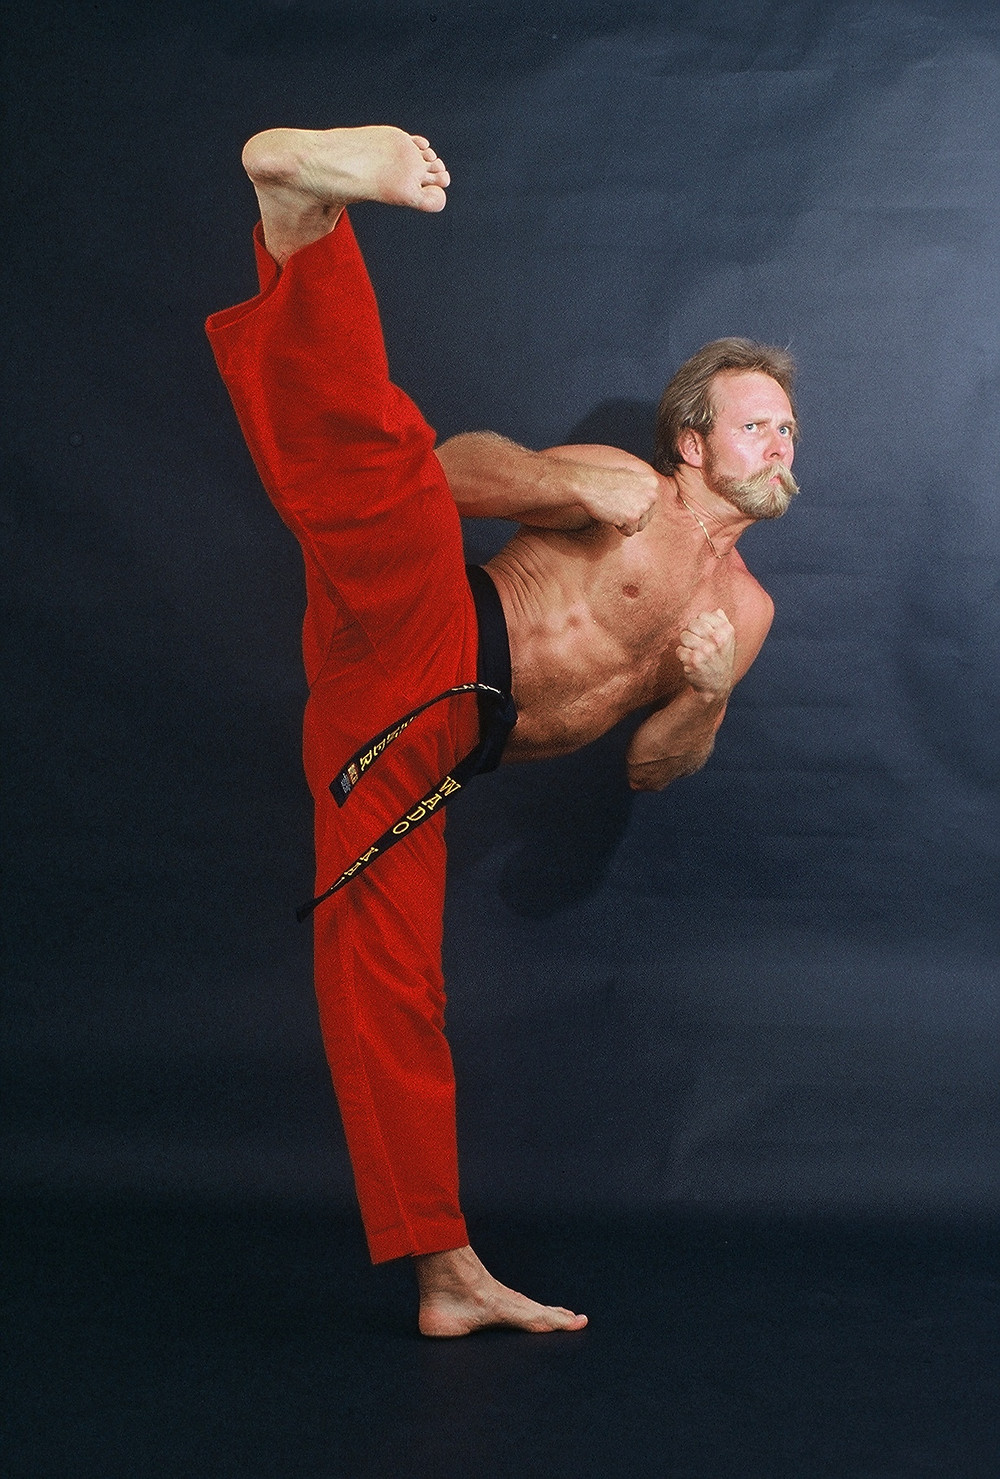 Richard Turner | Martial Arts | Credit: DEALT Movie | Rigging the draw: Documenting the world's greatest card cheat